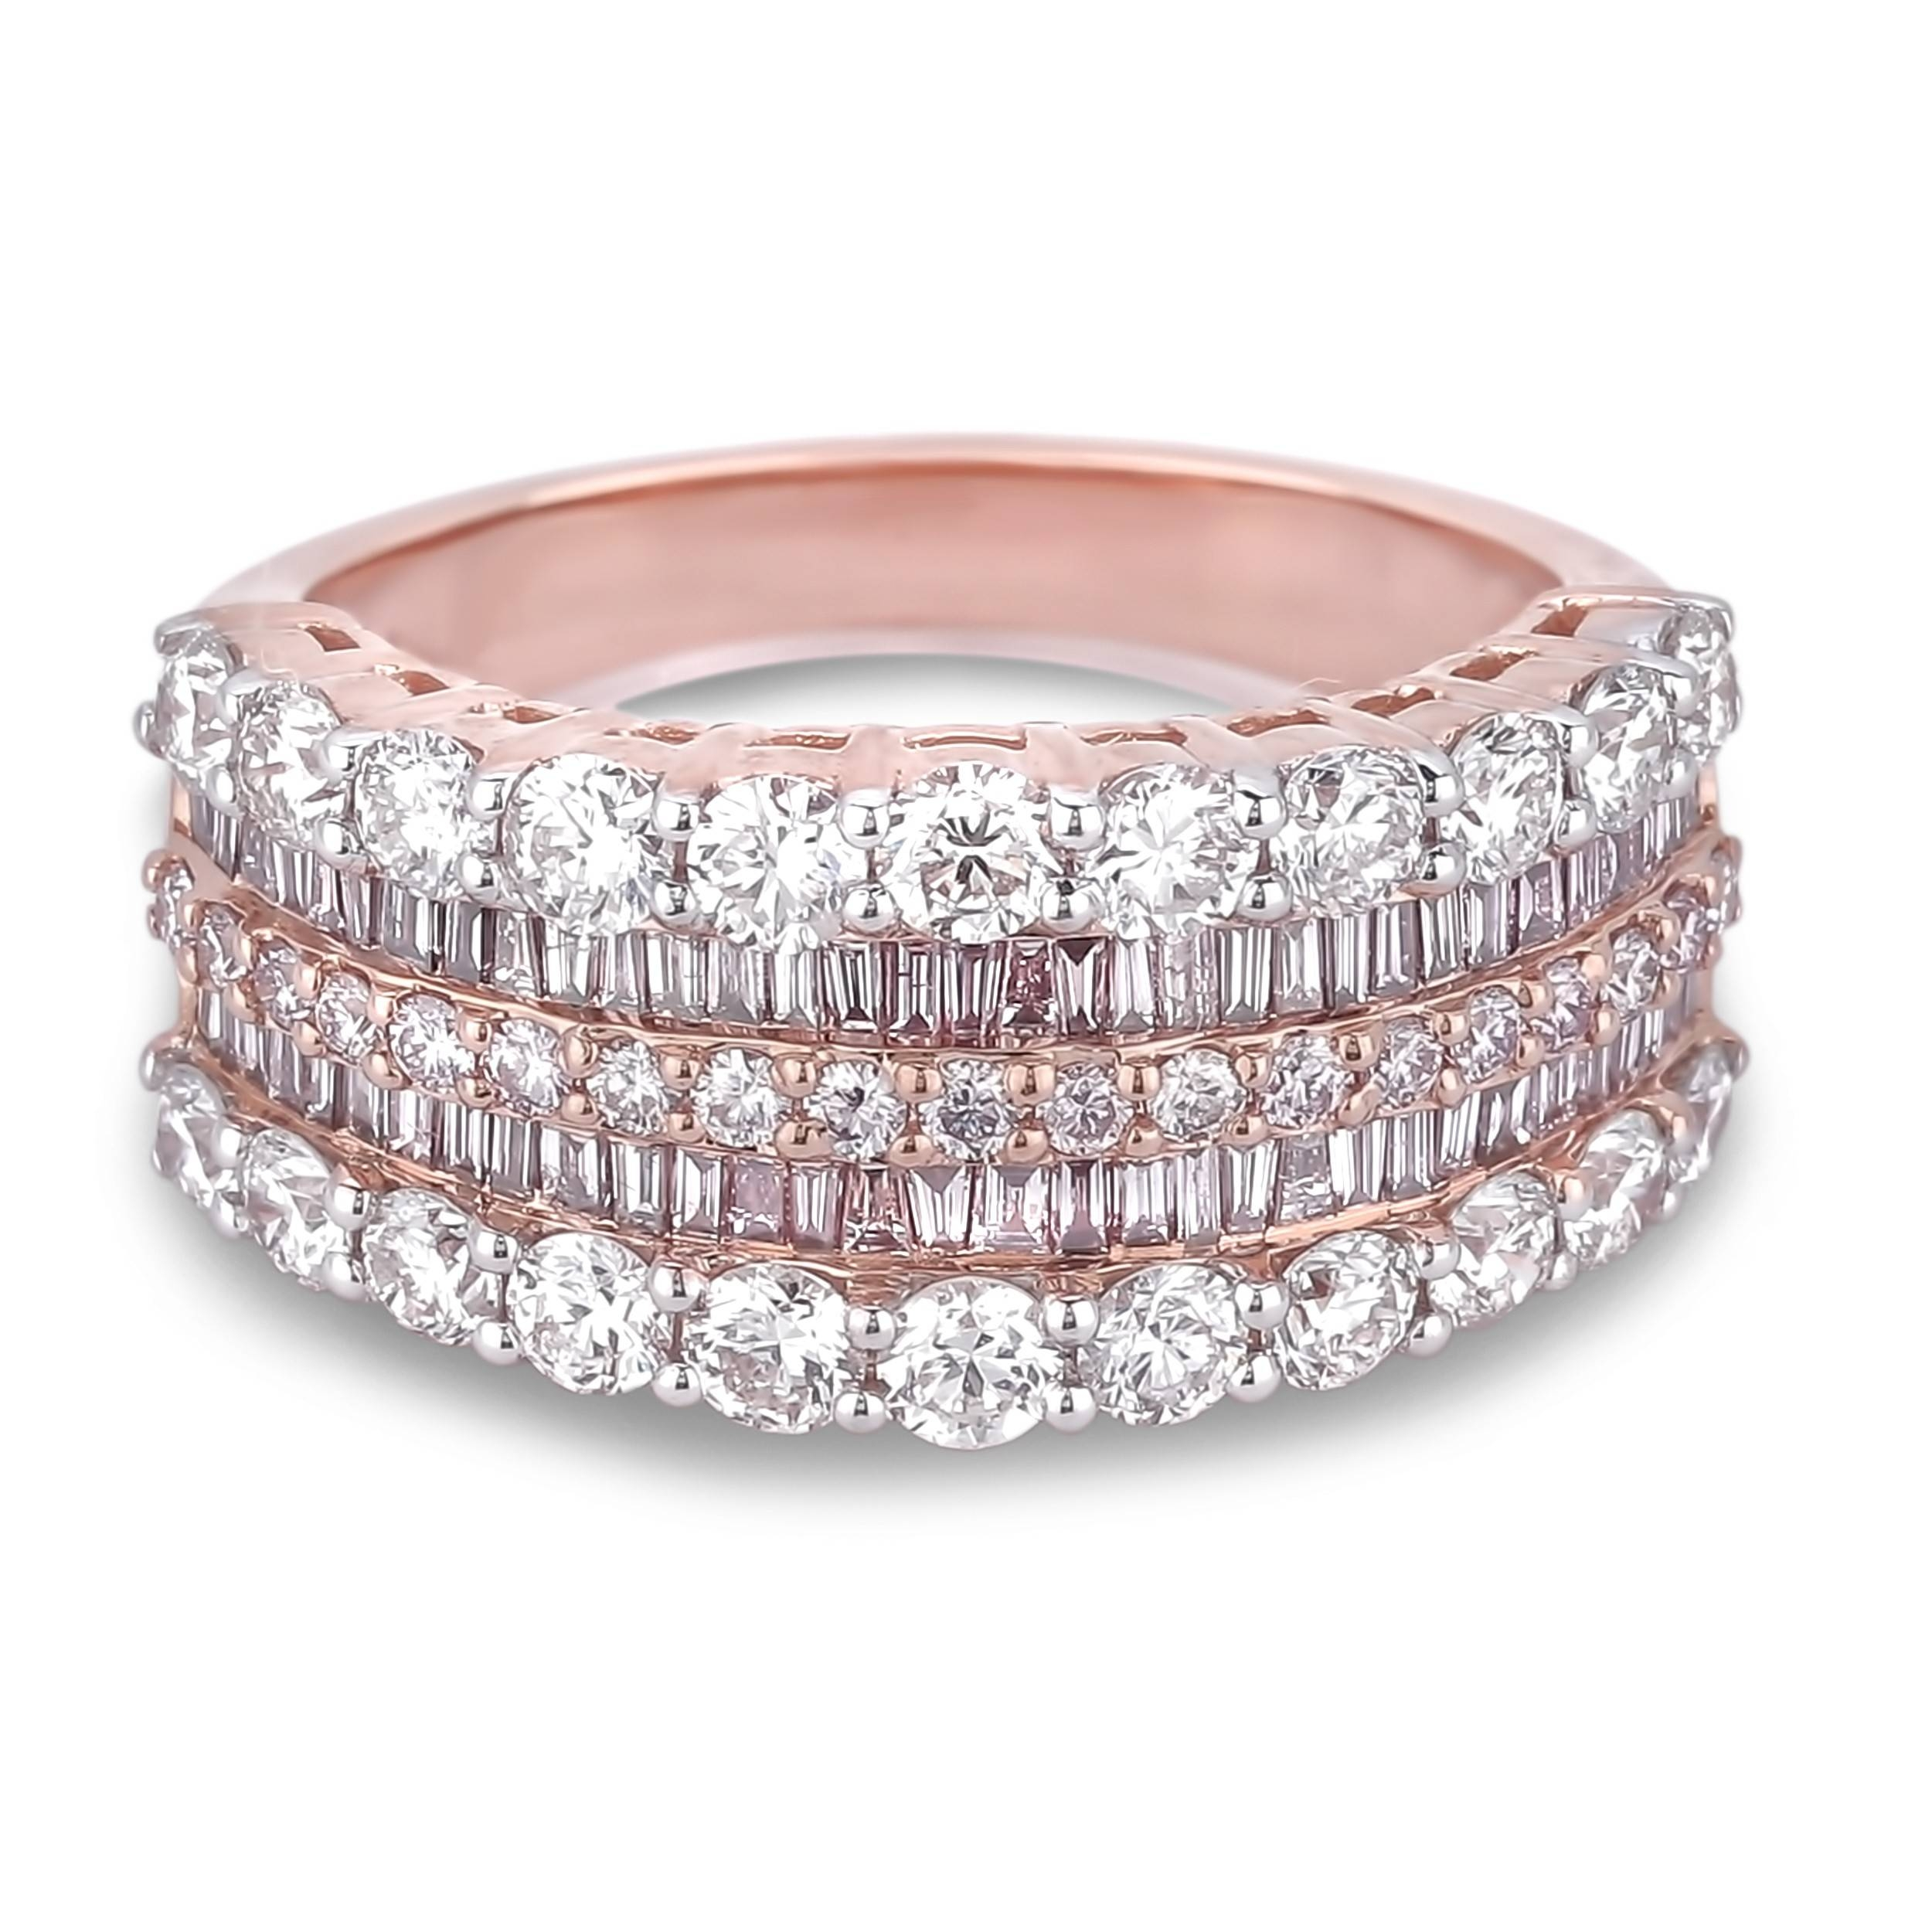 Lugaro | Argyle Pink Diamond Anniversary Ring Throughout Most Recent Diamonds Wedding Anniversary Rings (View 16 of 25)